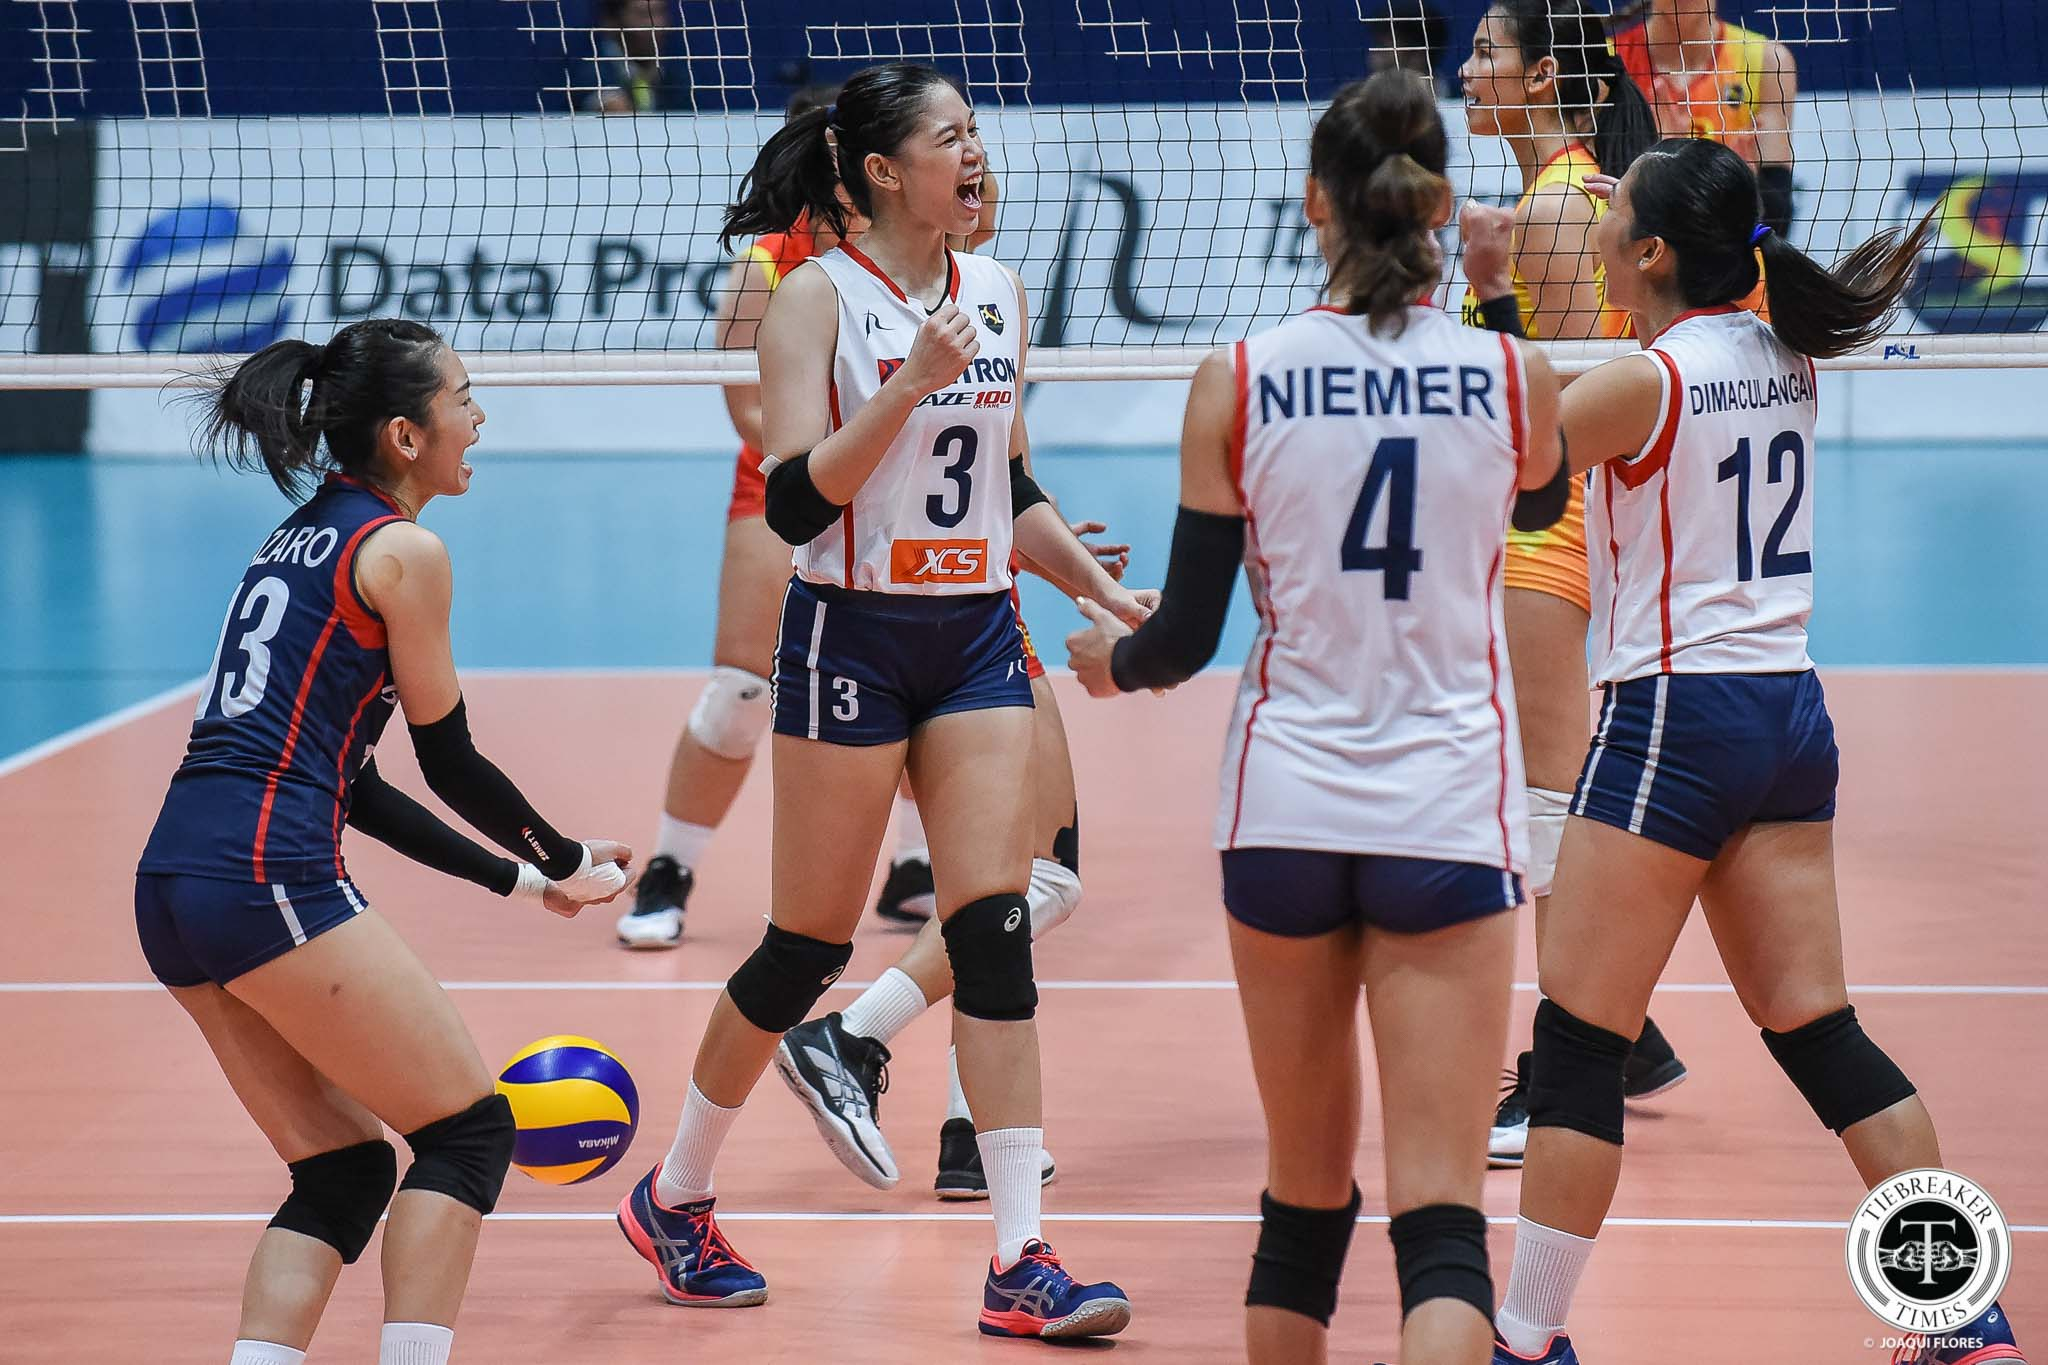 Tiebreaker Times Petron played lighter after letting out frustrations from Game 1 loss News PSL Volleyball  Shaq delos Santos F2 Logistics Cargo Movers 2019 PSL Season 2019 PSL Grand Prix